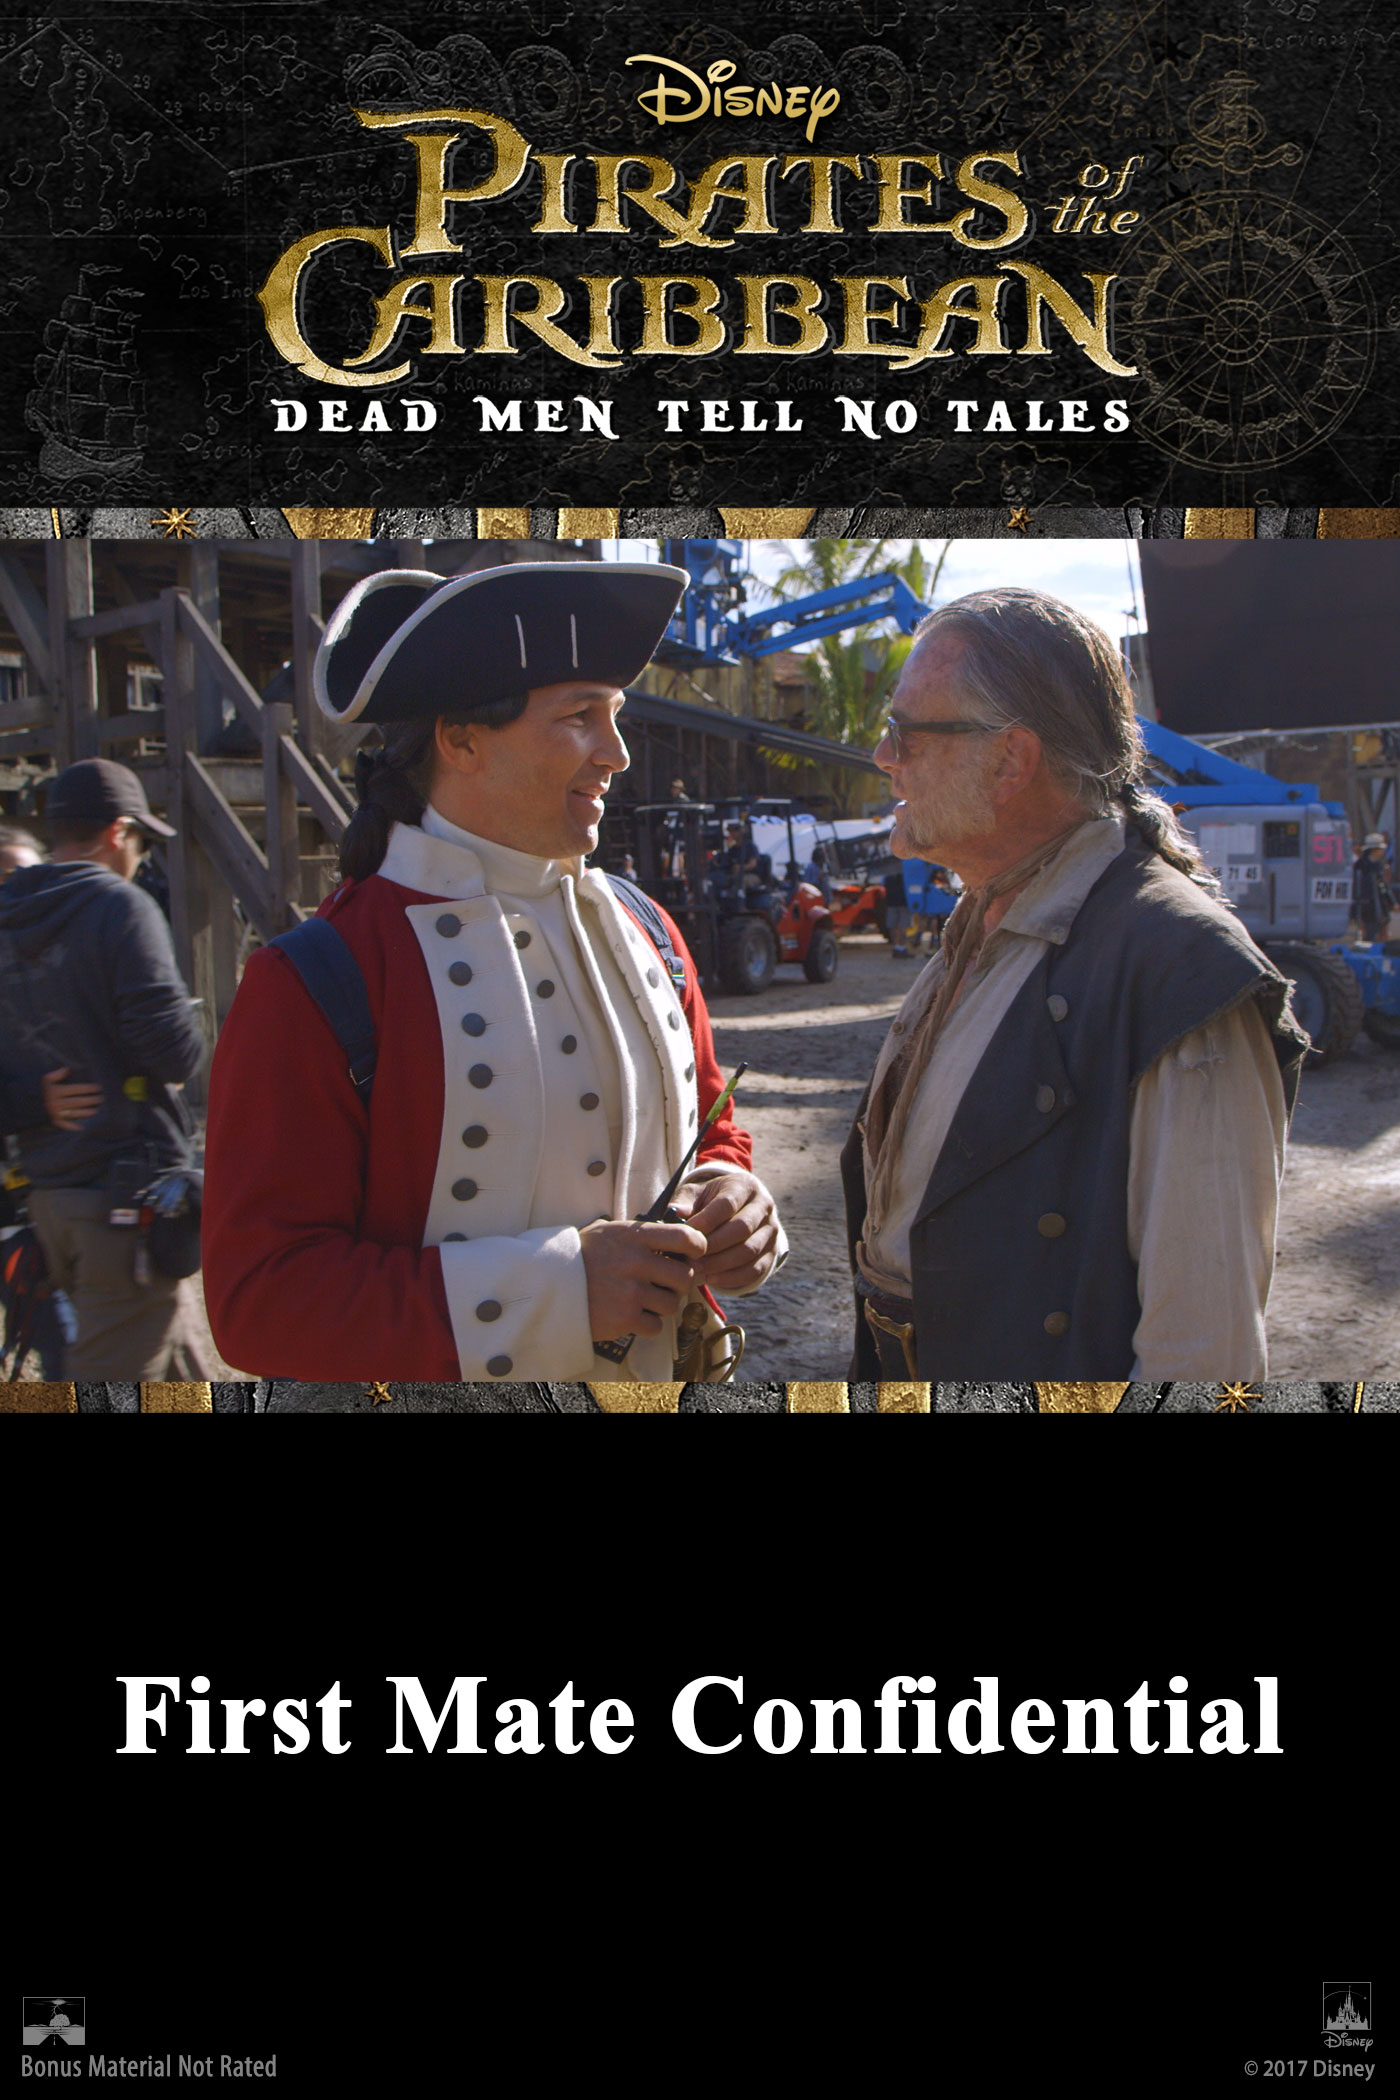 First Mate Confidential